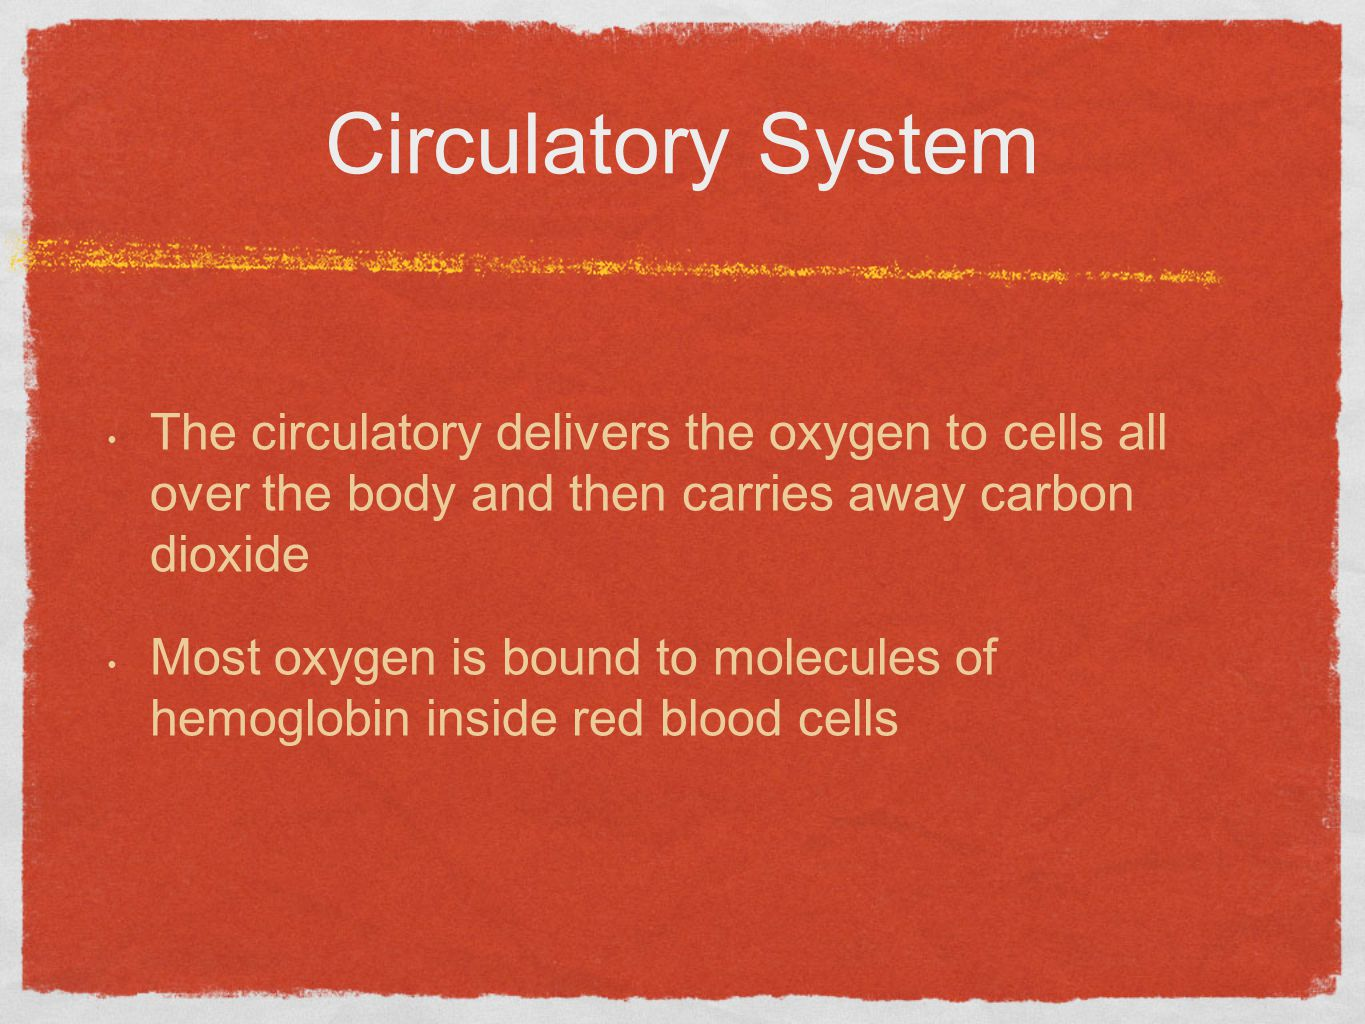 Circulatory System The circulatory delivers the oxygen to cells all over the body and then carries away carbon dioxide.